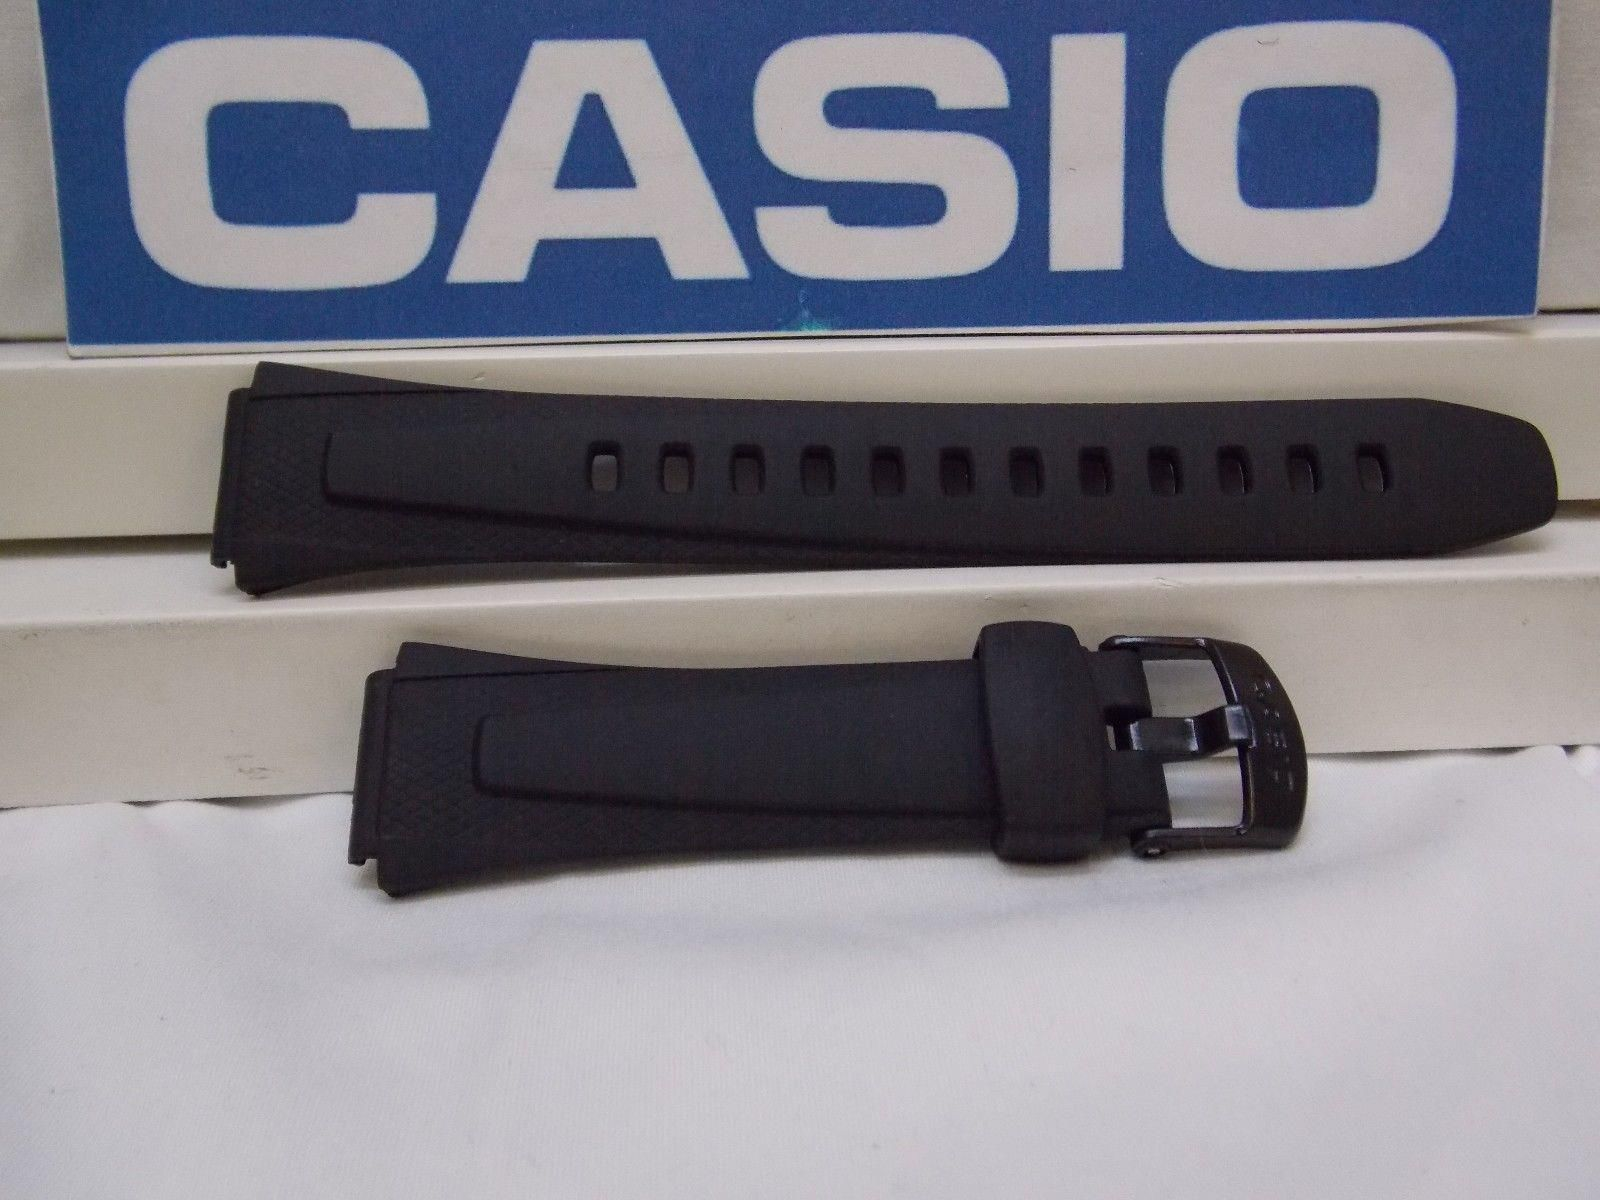 Original Strap for Casio W-800 Wristwatch